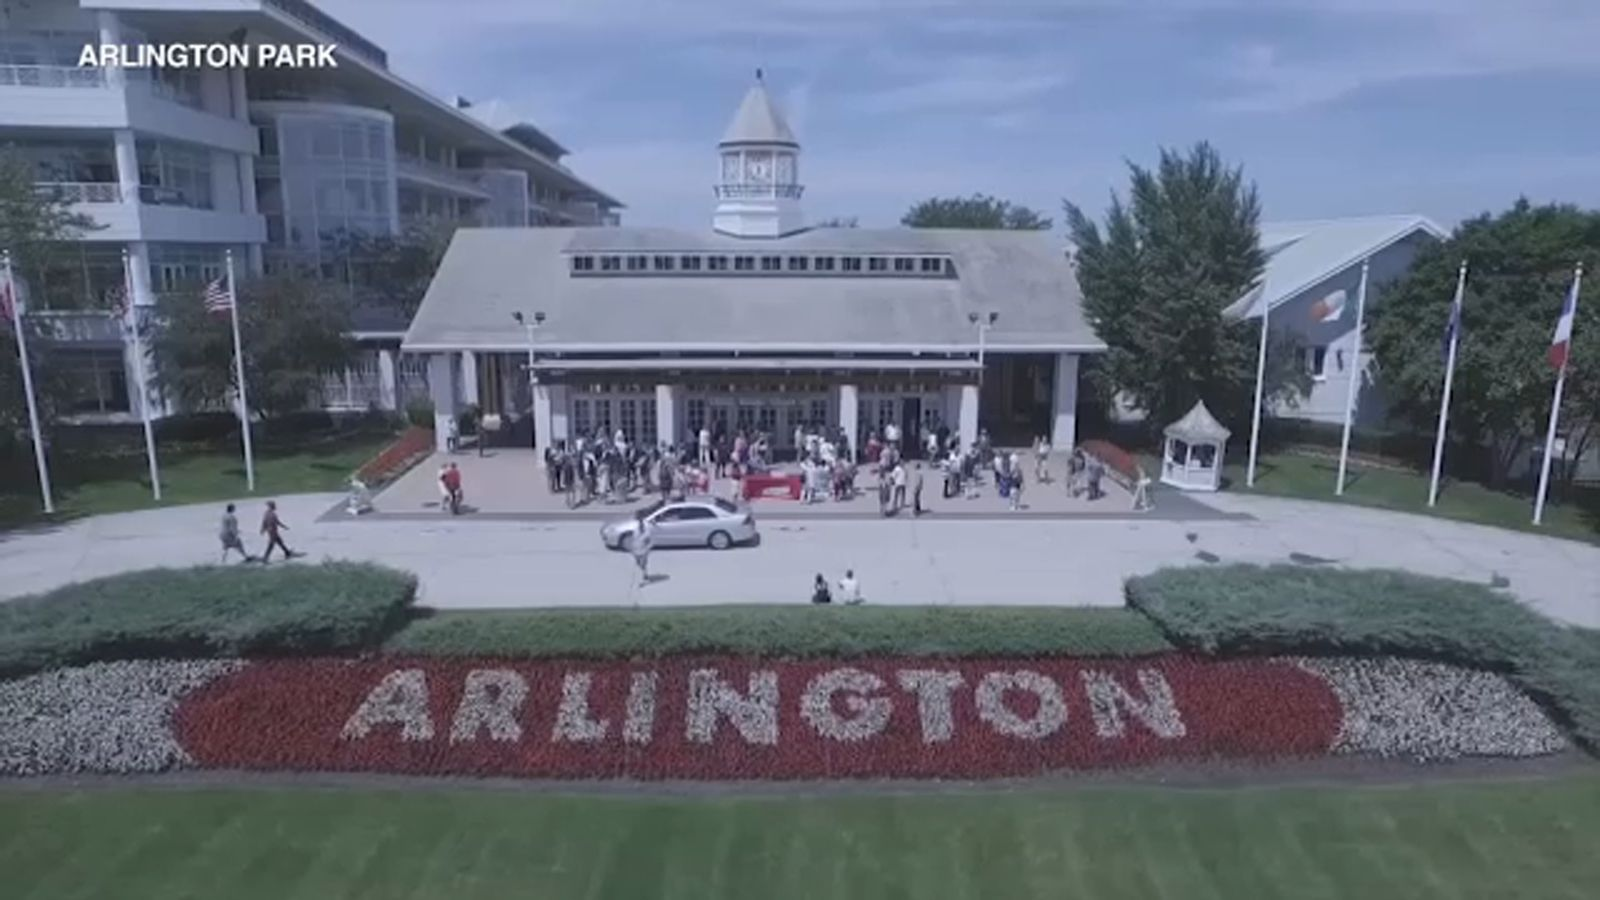 Chicago Bears may be eyeing Arlington Park as new stadium over Soldier Field